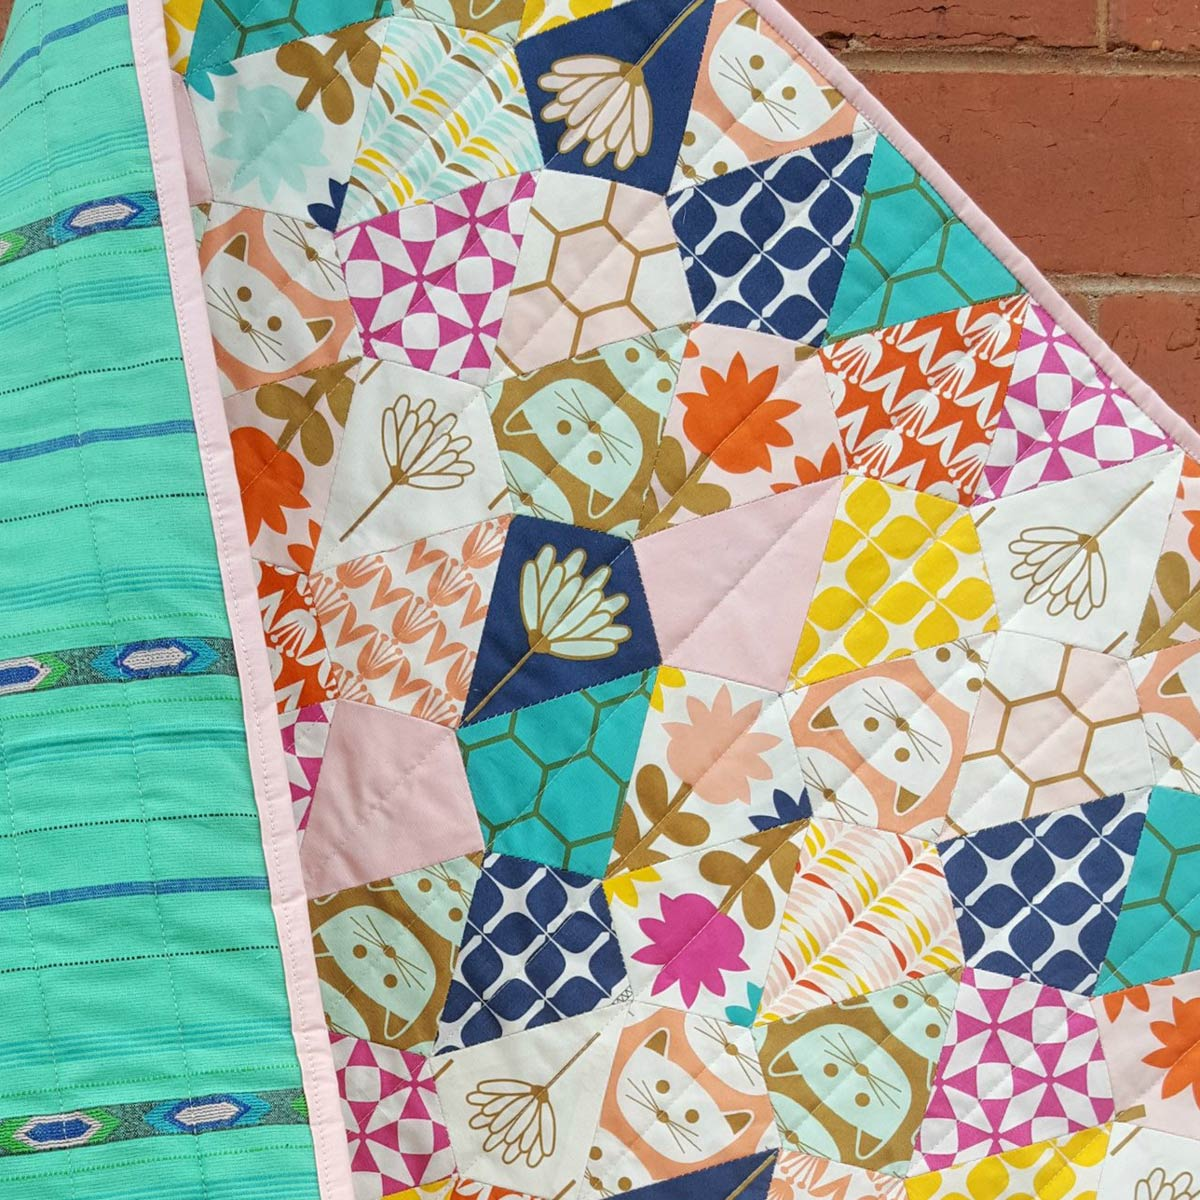 Pond Quilt from Tales of Cloth | English paper piecing | Blush fabric collection by Dana Willard from Art Gallery Fabrics